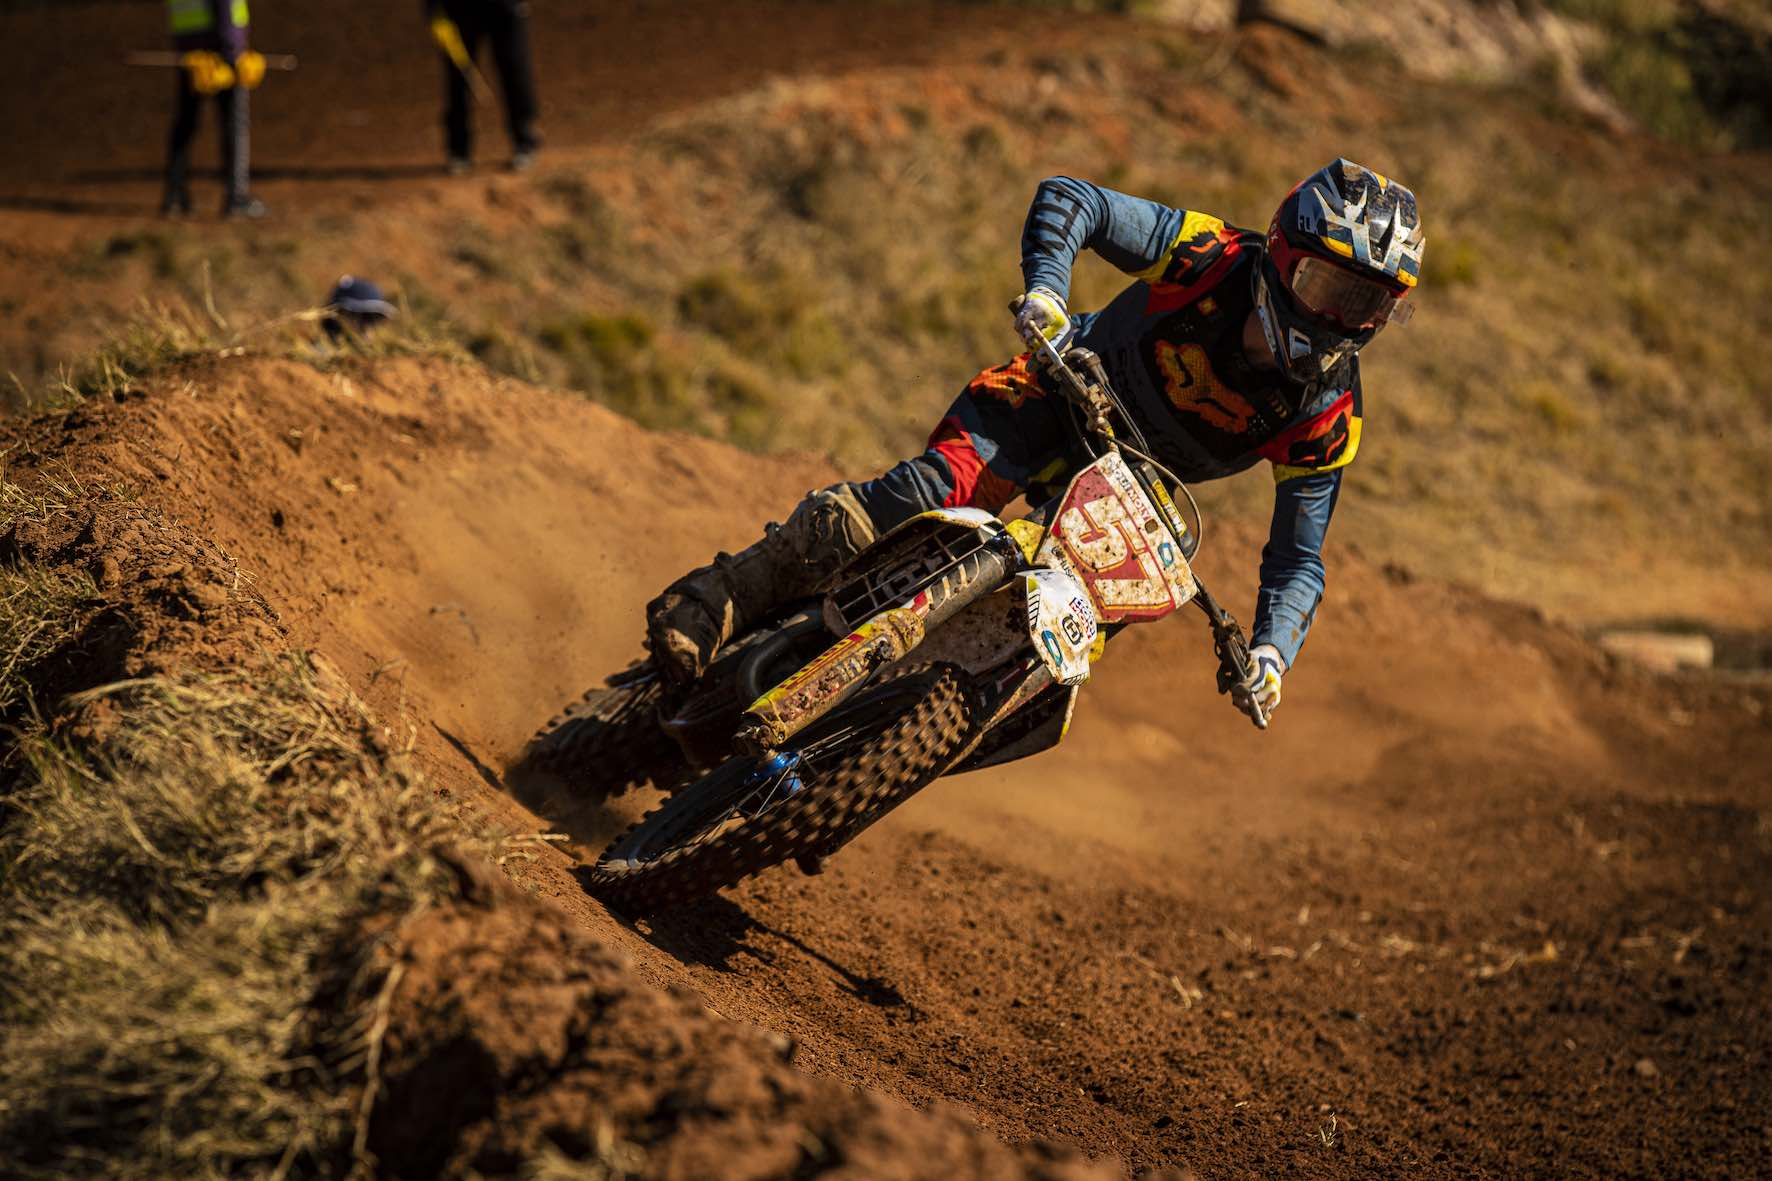 Maddy Malan racing Round 4 of the 2019 SA Motocross Nationals at Dirt Bronco